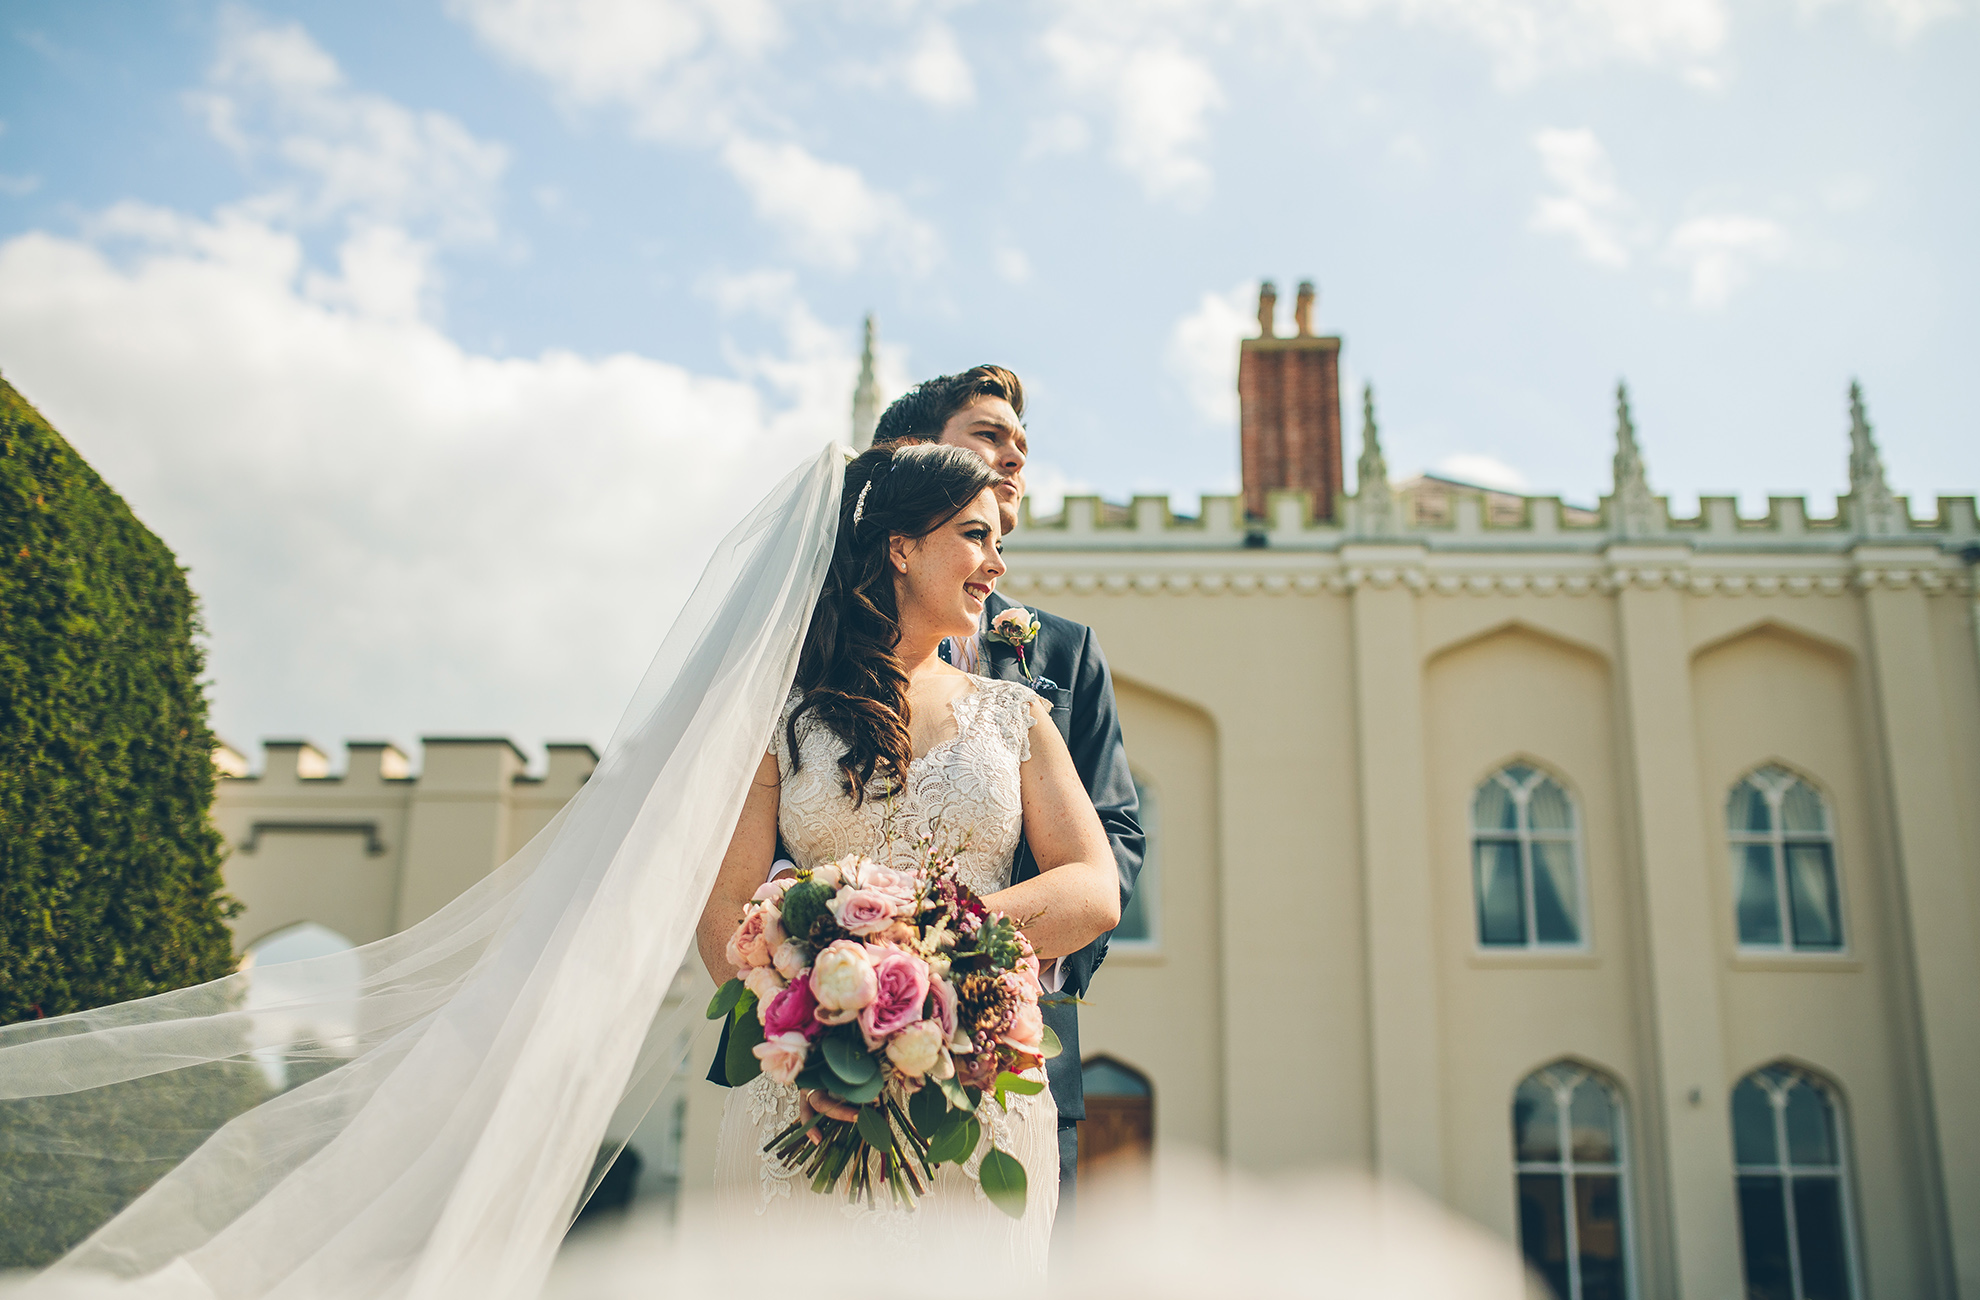 A bride and groom take time away from guests on their wedding day at Combermere Abbey